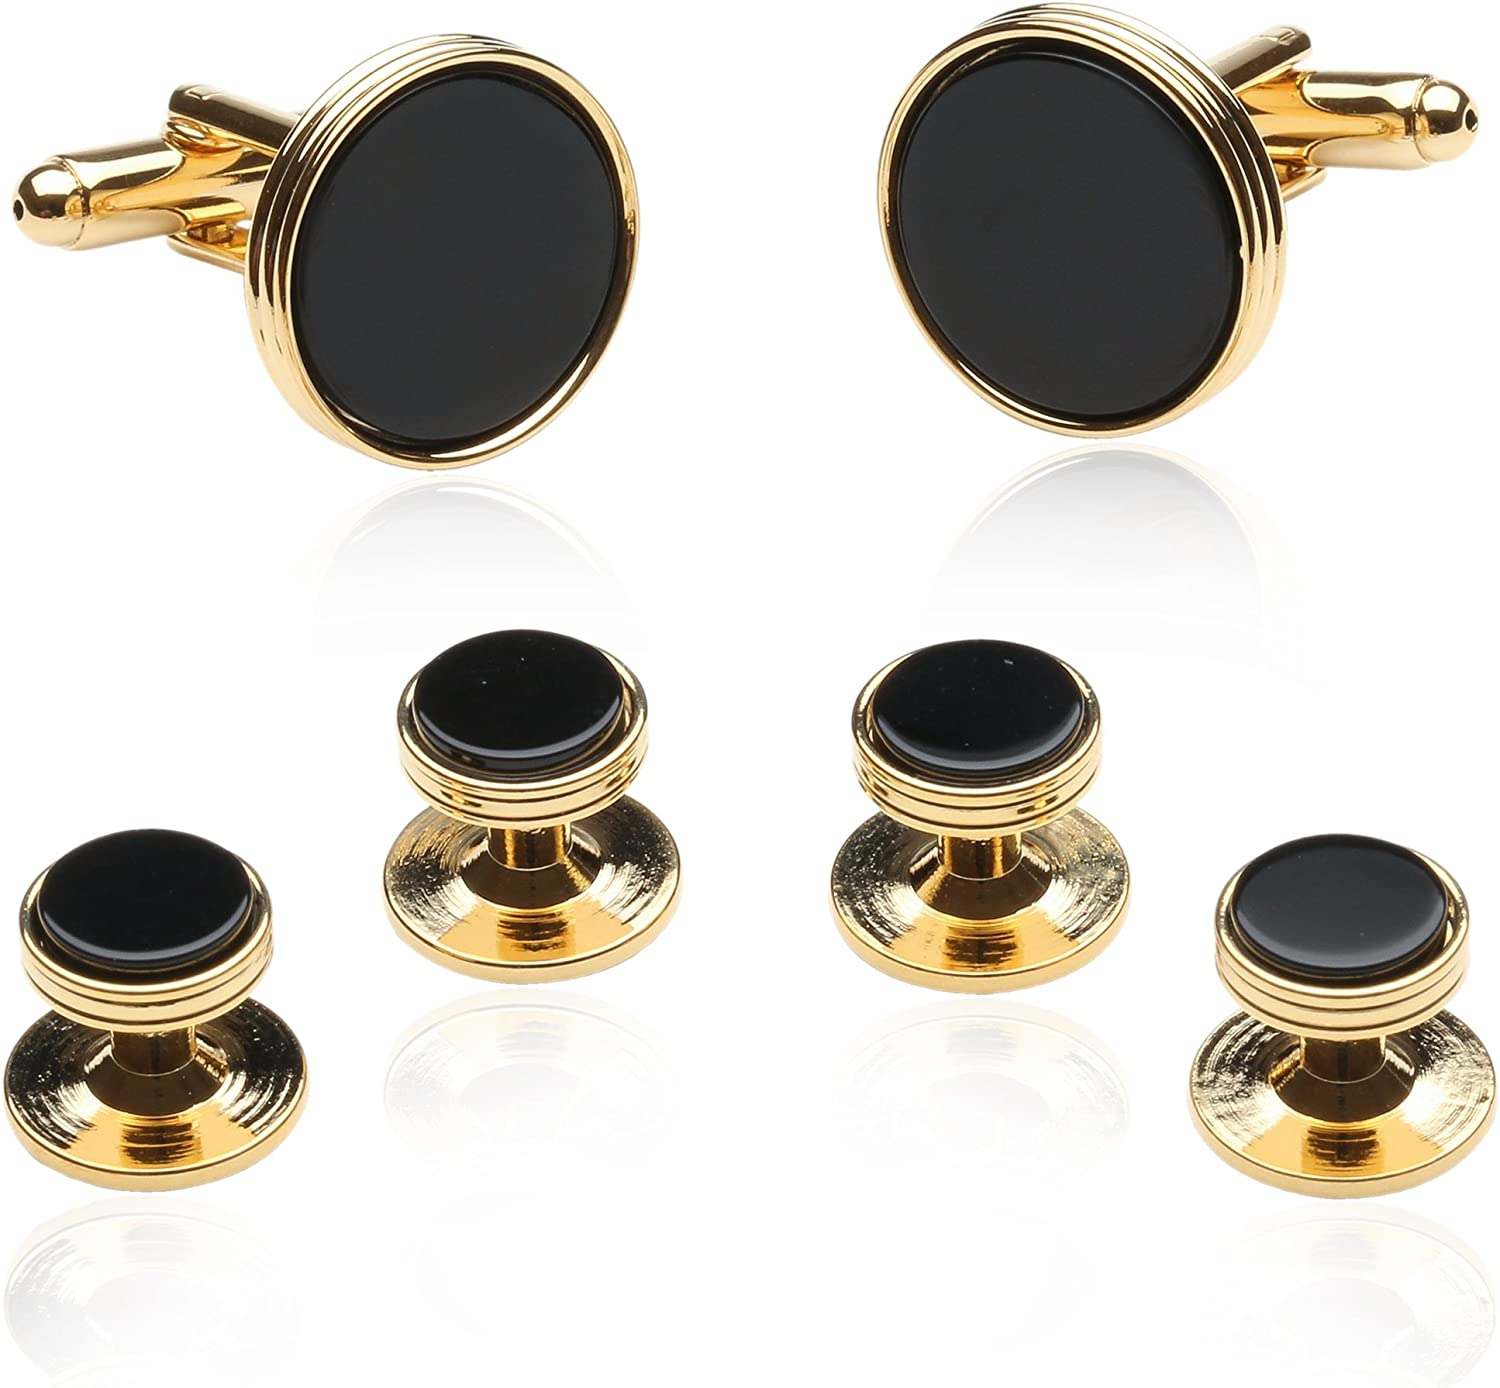 Cuff-Daddy Black Onyx and Gold Tone Cufflinks and Studs with Presentation Box Unique Men Cufflinks for Wedding Anniversary Special Occasions Jewelry Presentation Box